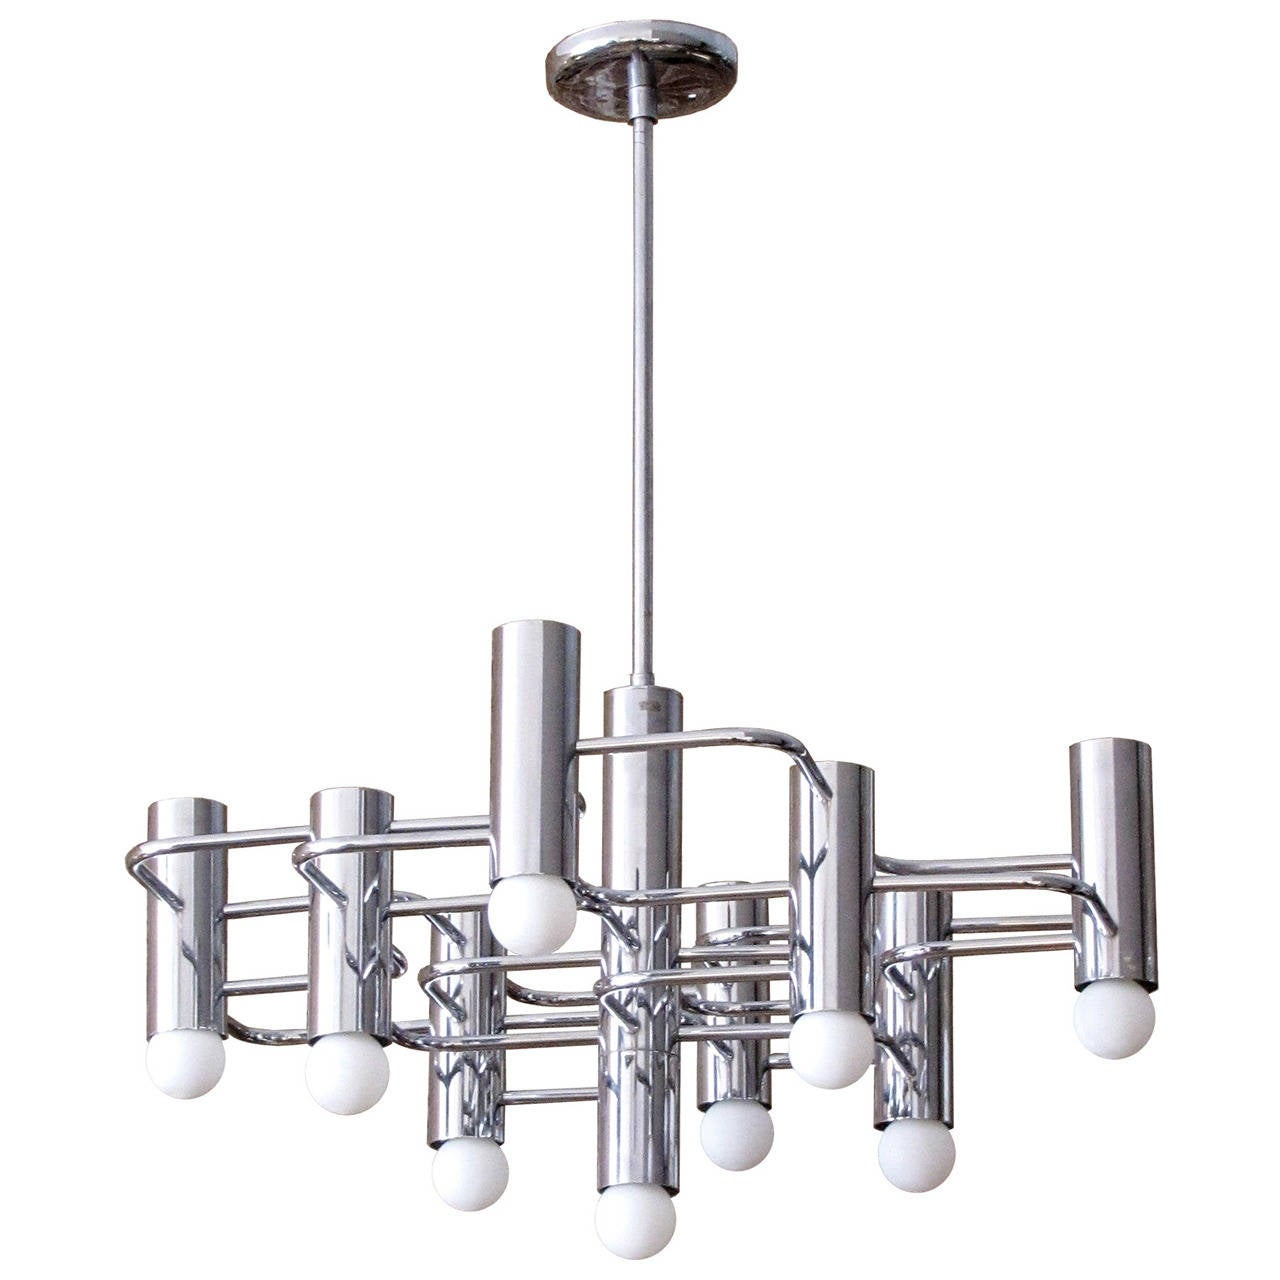 Boulanger chrome chandelier 1960 for sale at 1stdibs boulanger chrome chandelier 1960 for sale aloadofball Image collections